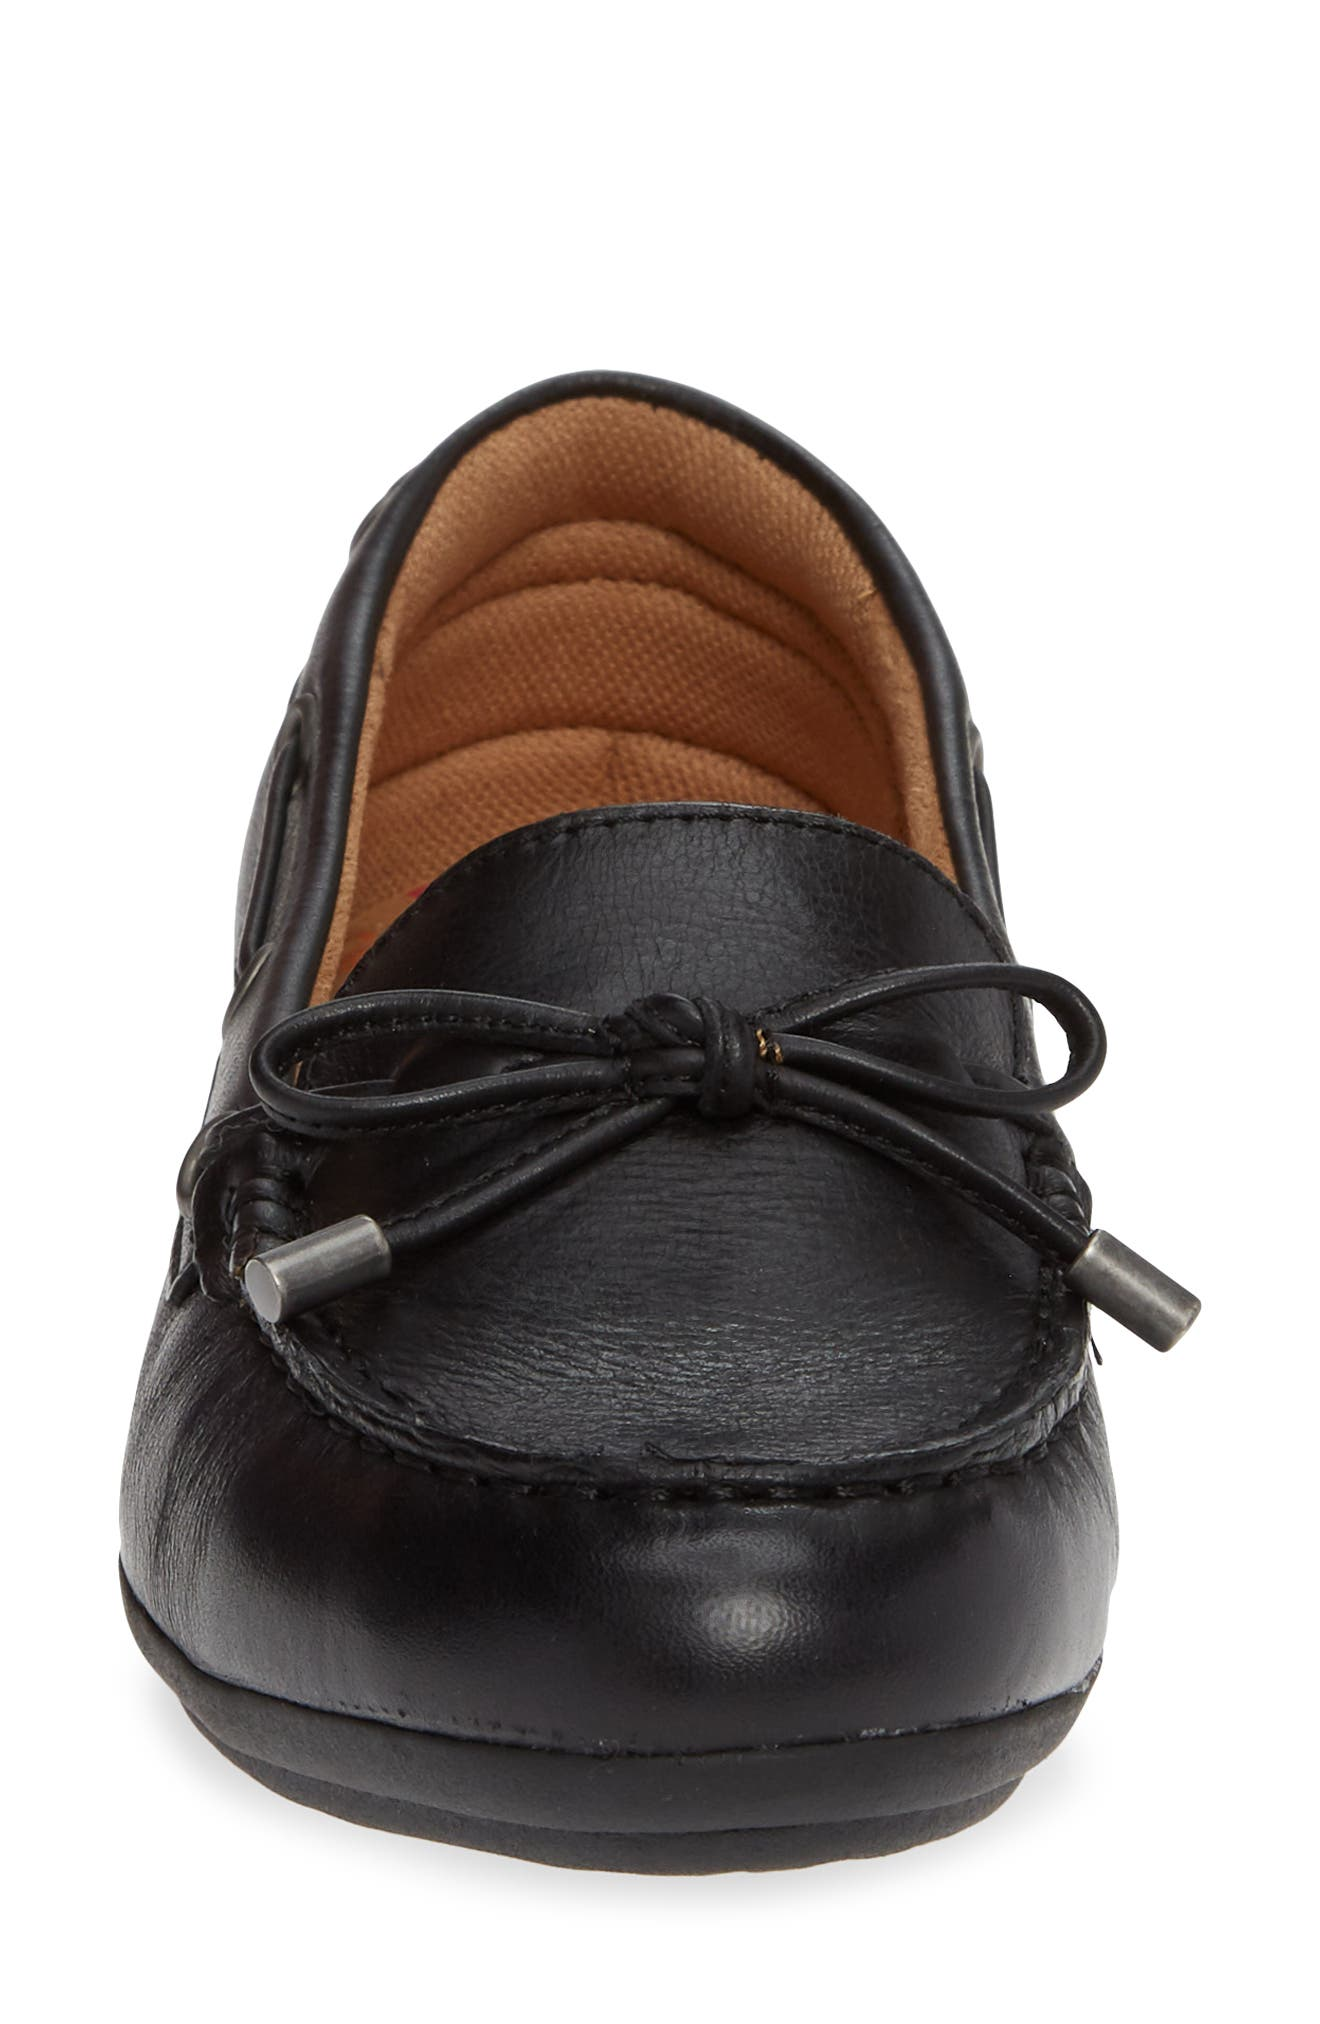 Mindy Loafer,                             Alternate thumbnail 4, color,                             BLACK